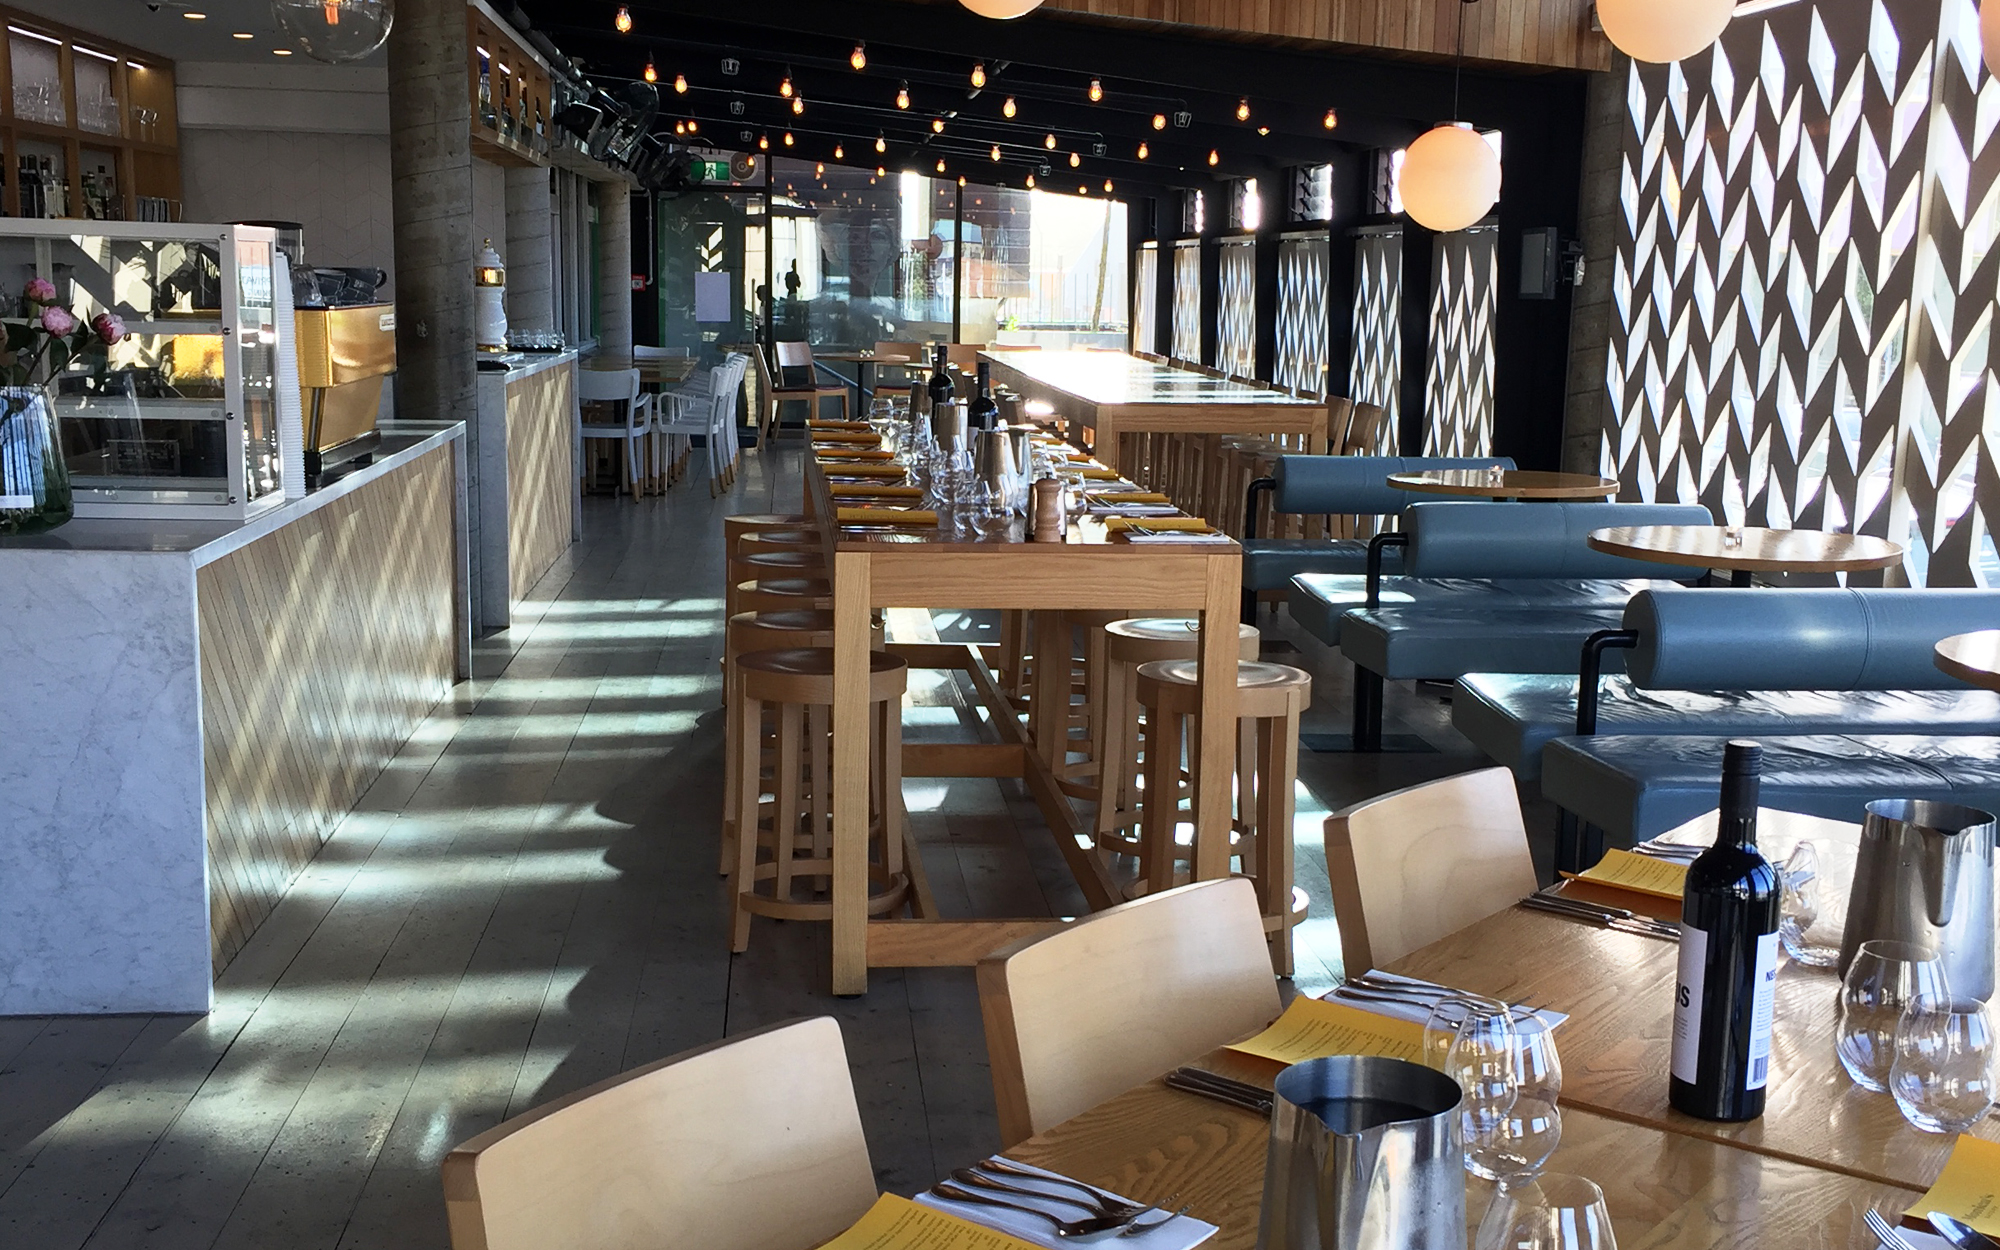 Monica's Eatery Cafe and Restaurant, West End Precinct cafe and Restaurant, New Plymouth